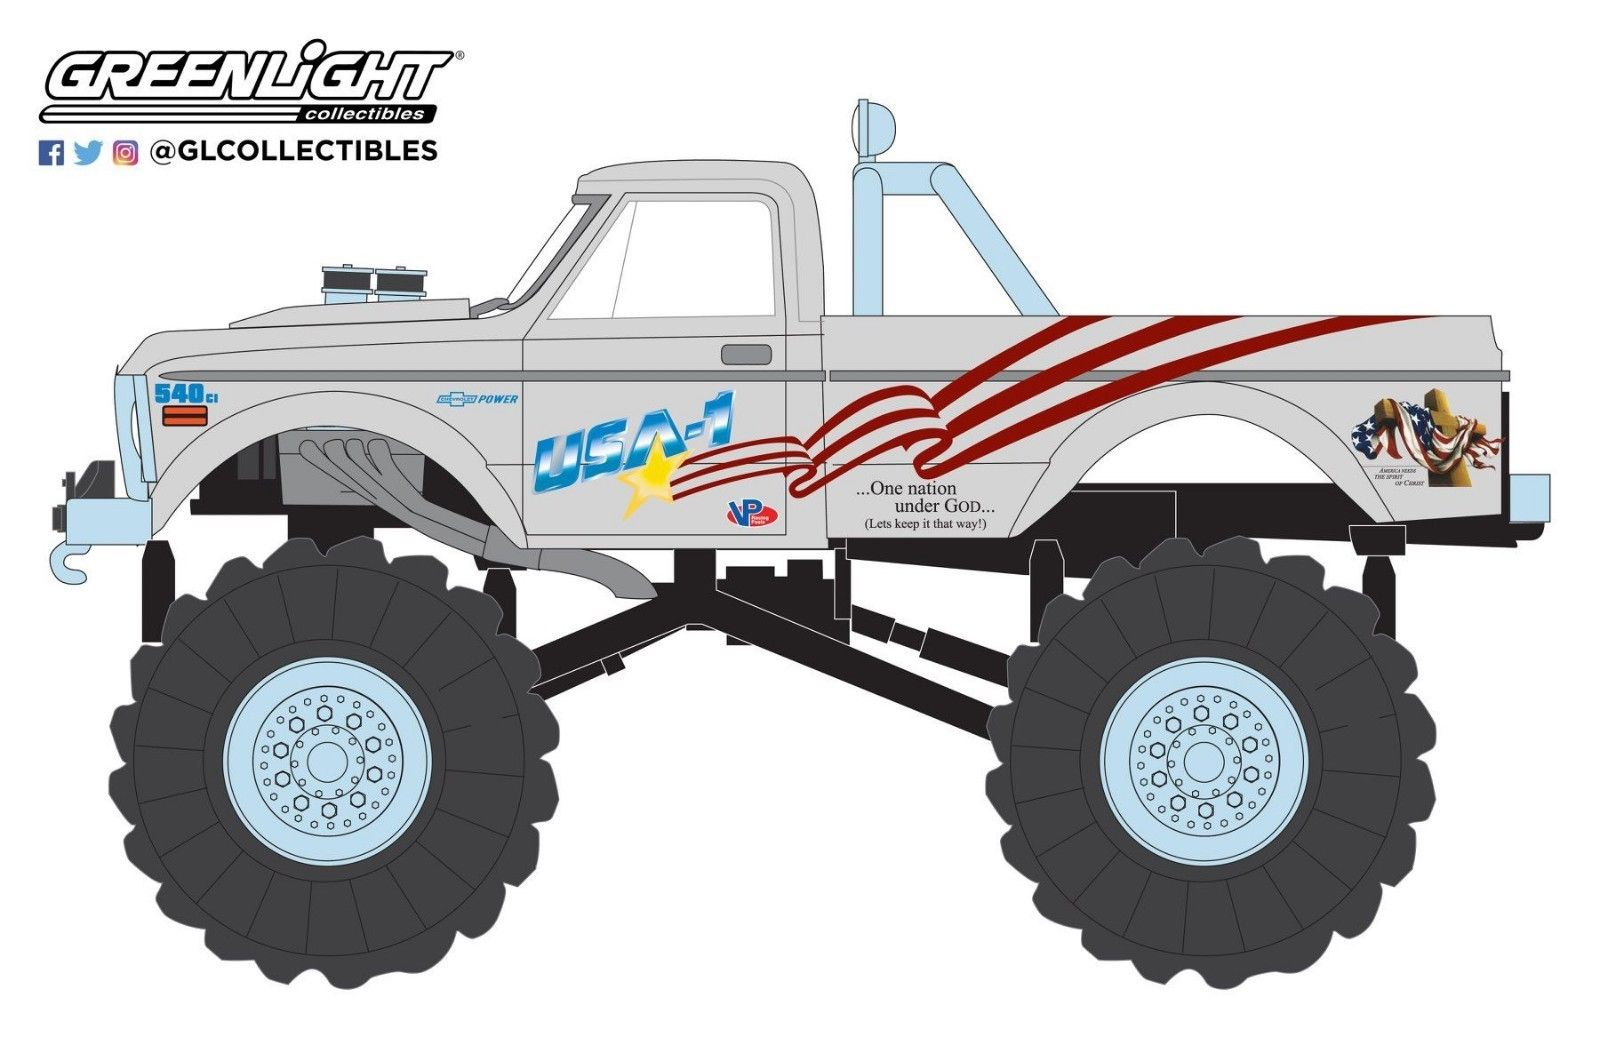 GREENLIGHT KINGS OF CRUNCH 1970 CHEVY K-10 MONSTER TRUCK USA-1 IN STOCK